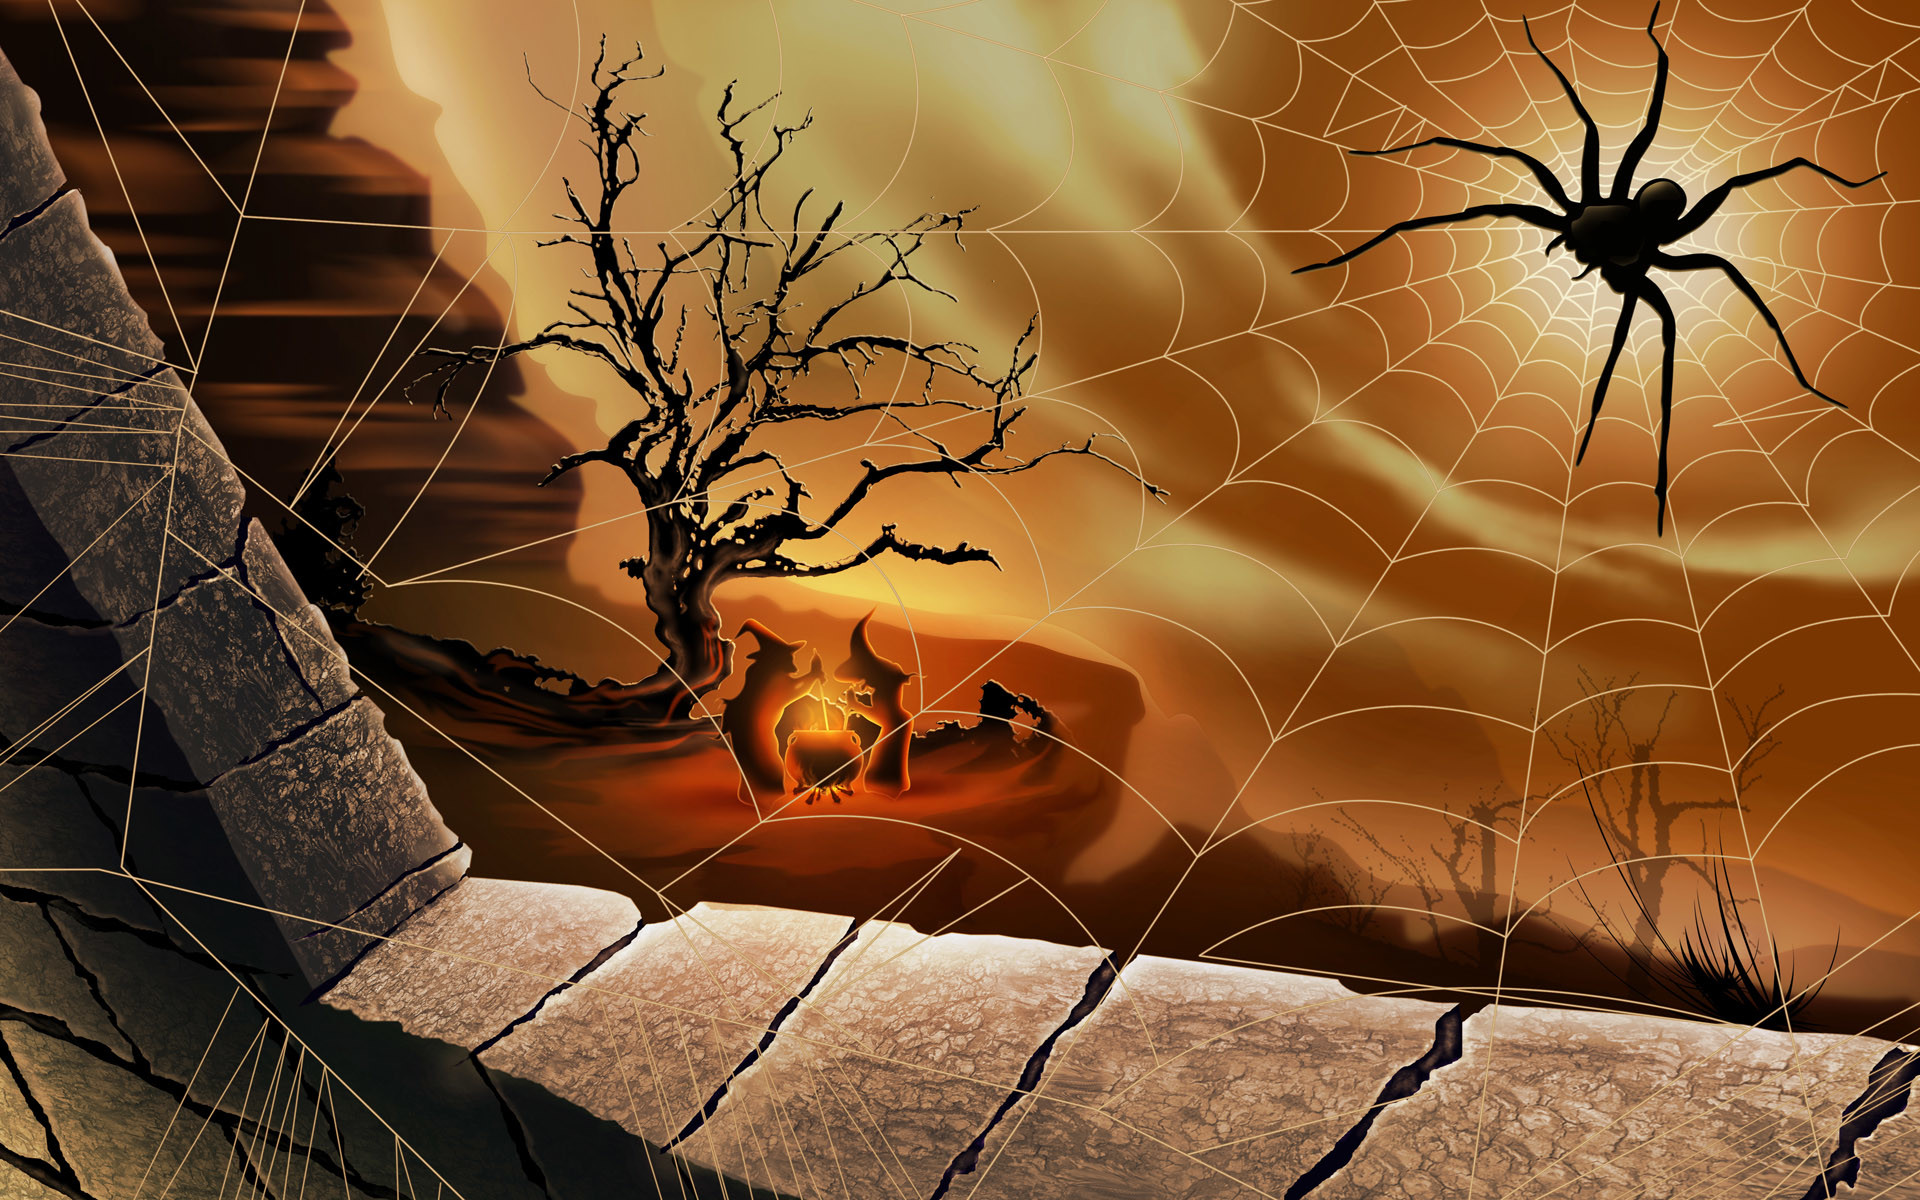 animated halloween wallpaper and screensavers 54 images